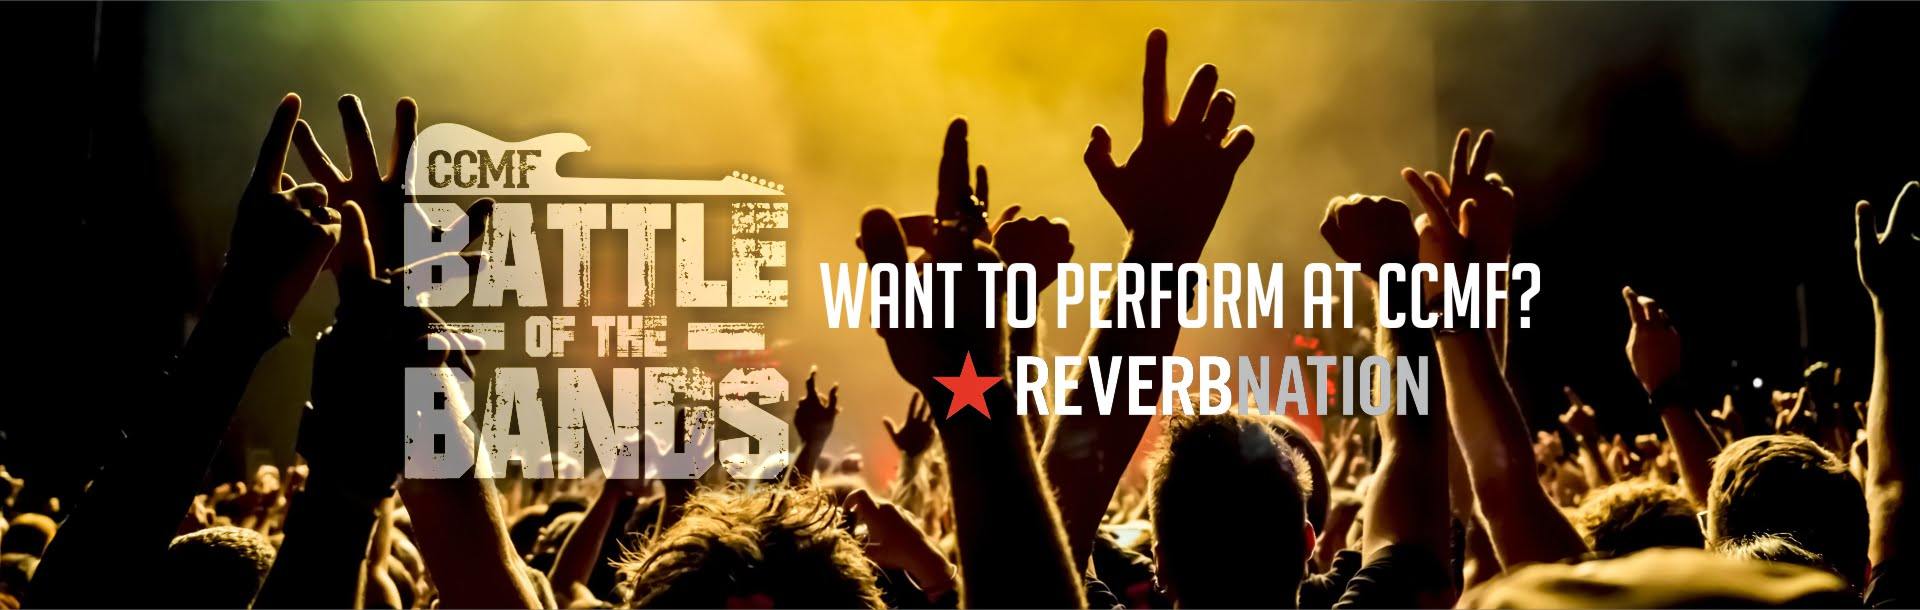 Want to perform at CCMF?!